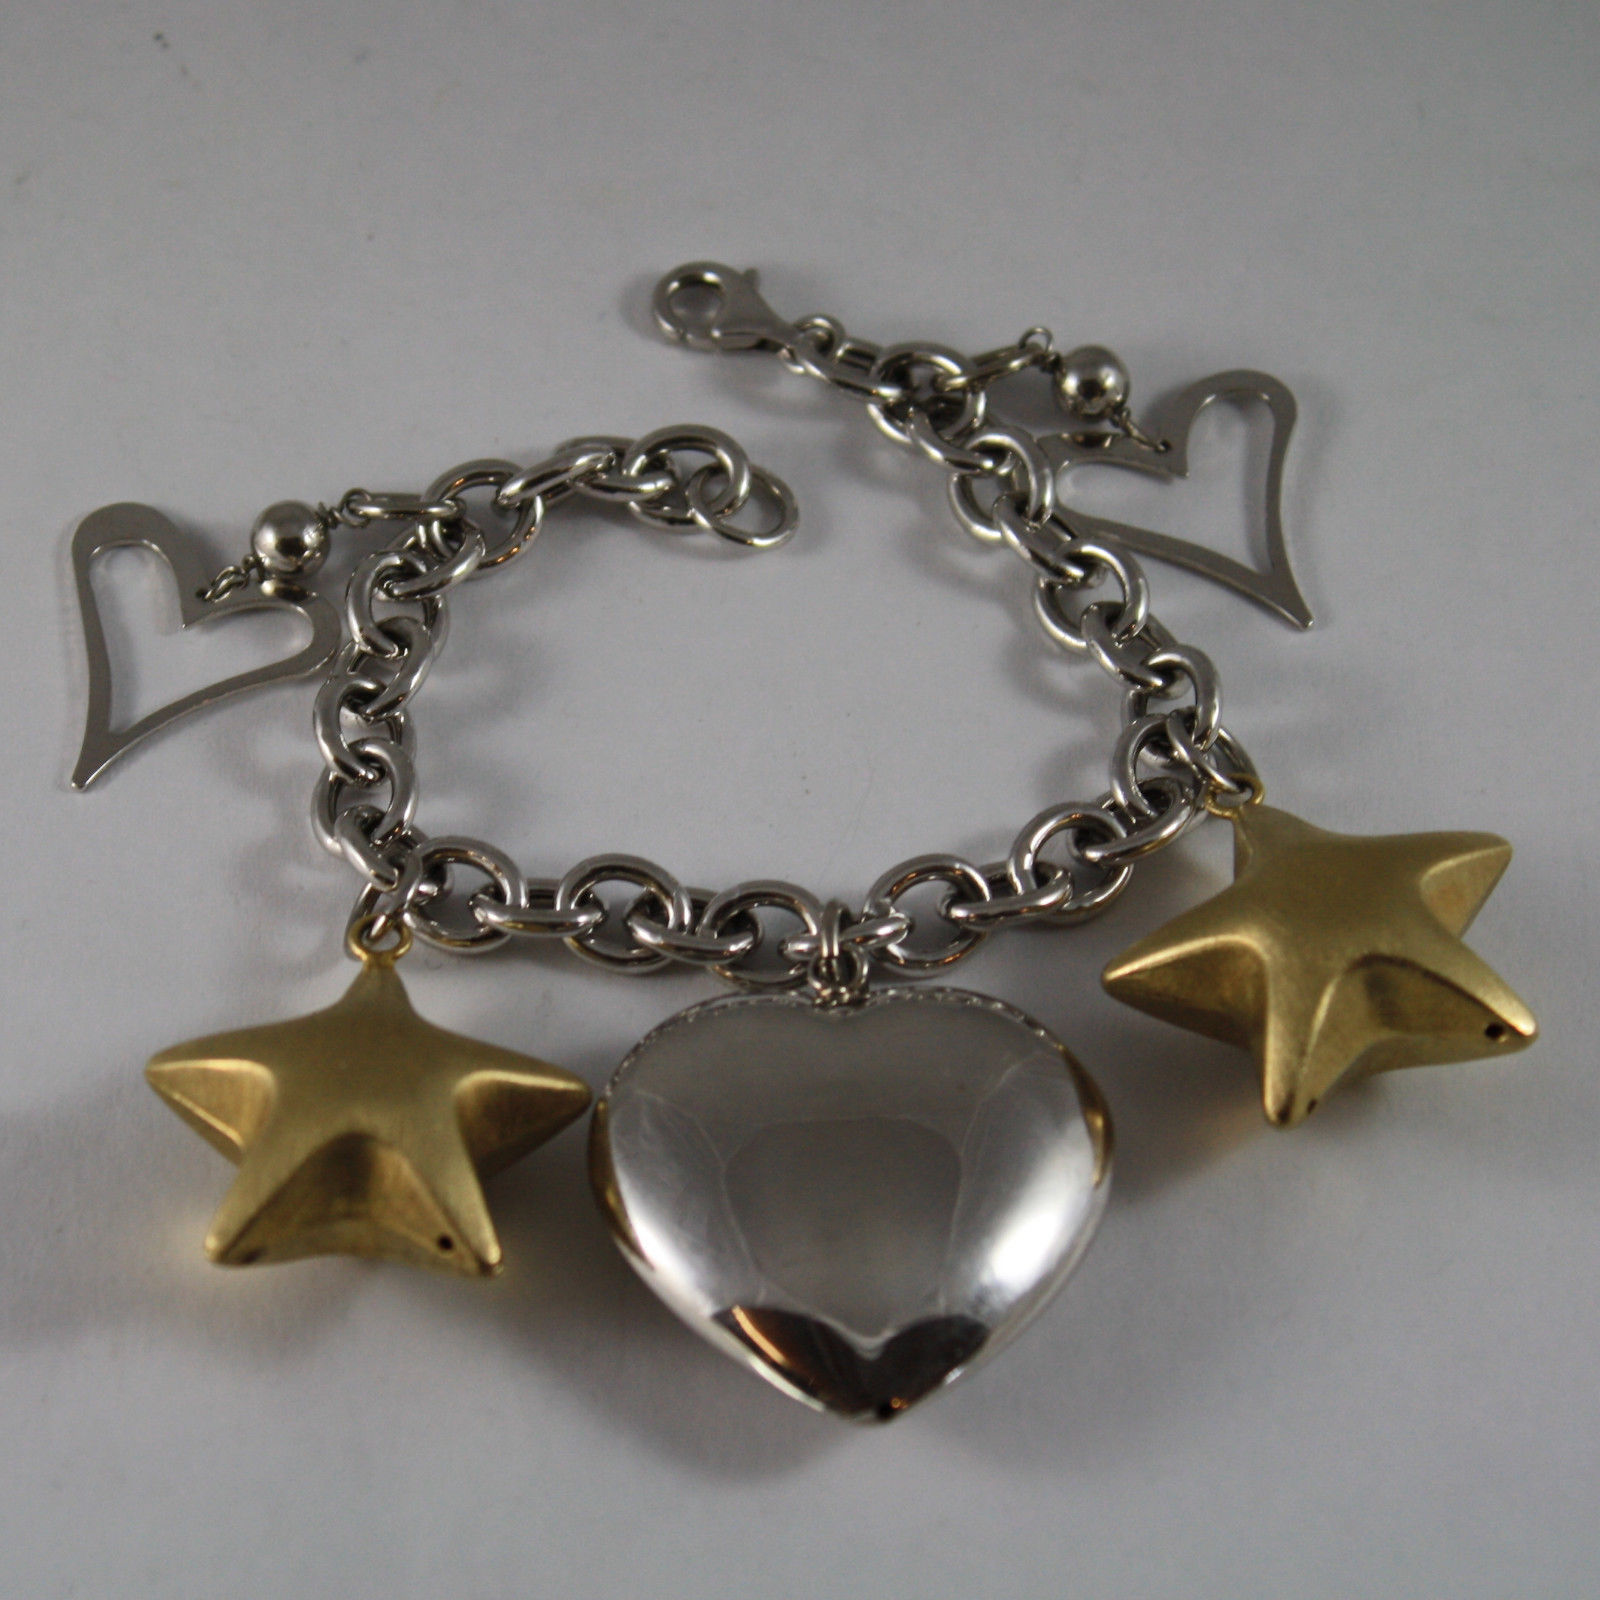 .925 RHODIUM SILVER BRACELET WITH YELLOW GOLD PLATED STARS AND HEARTS